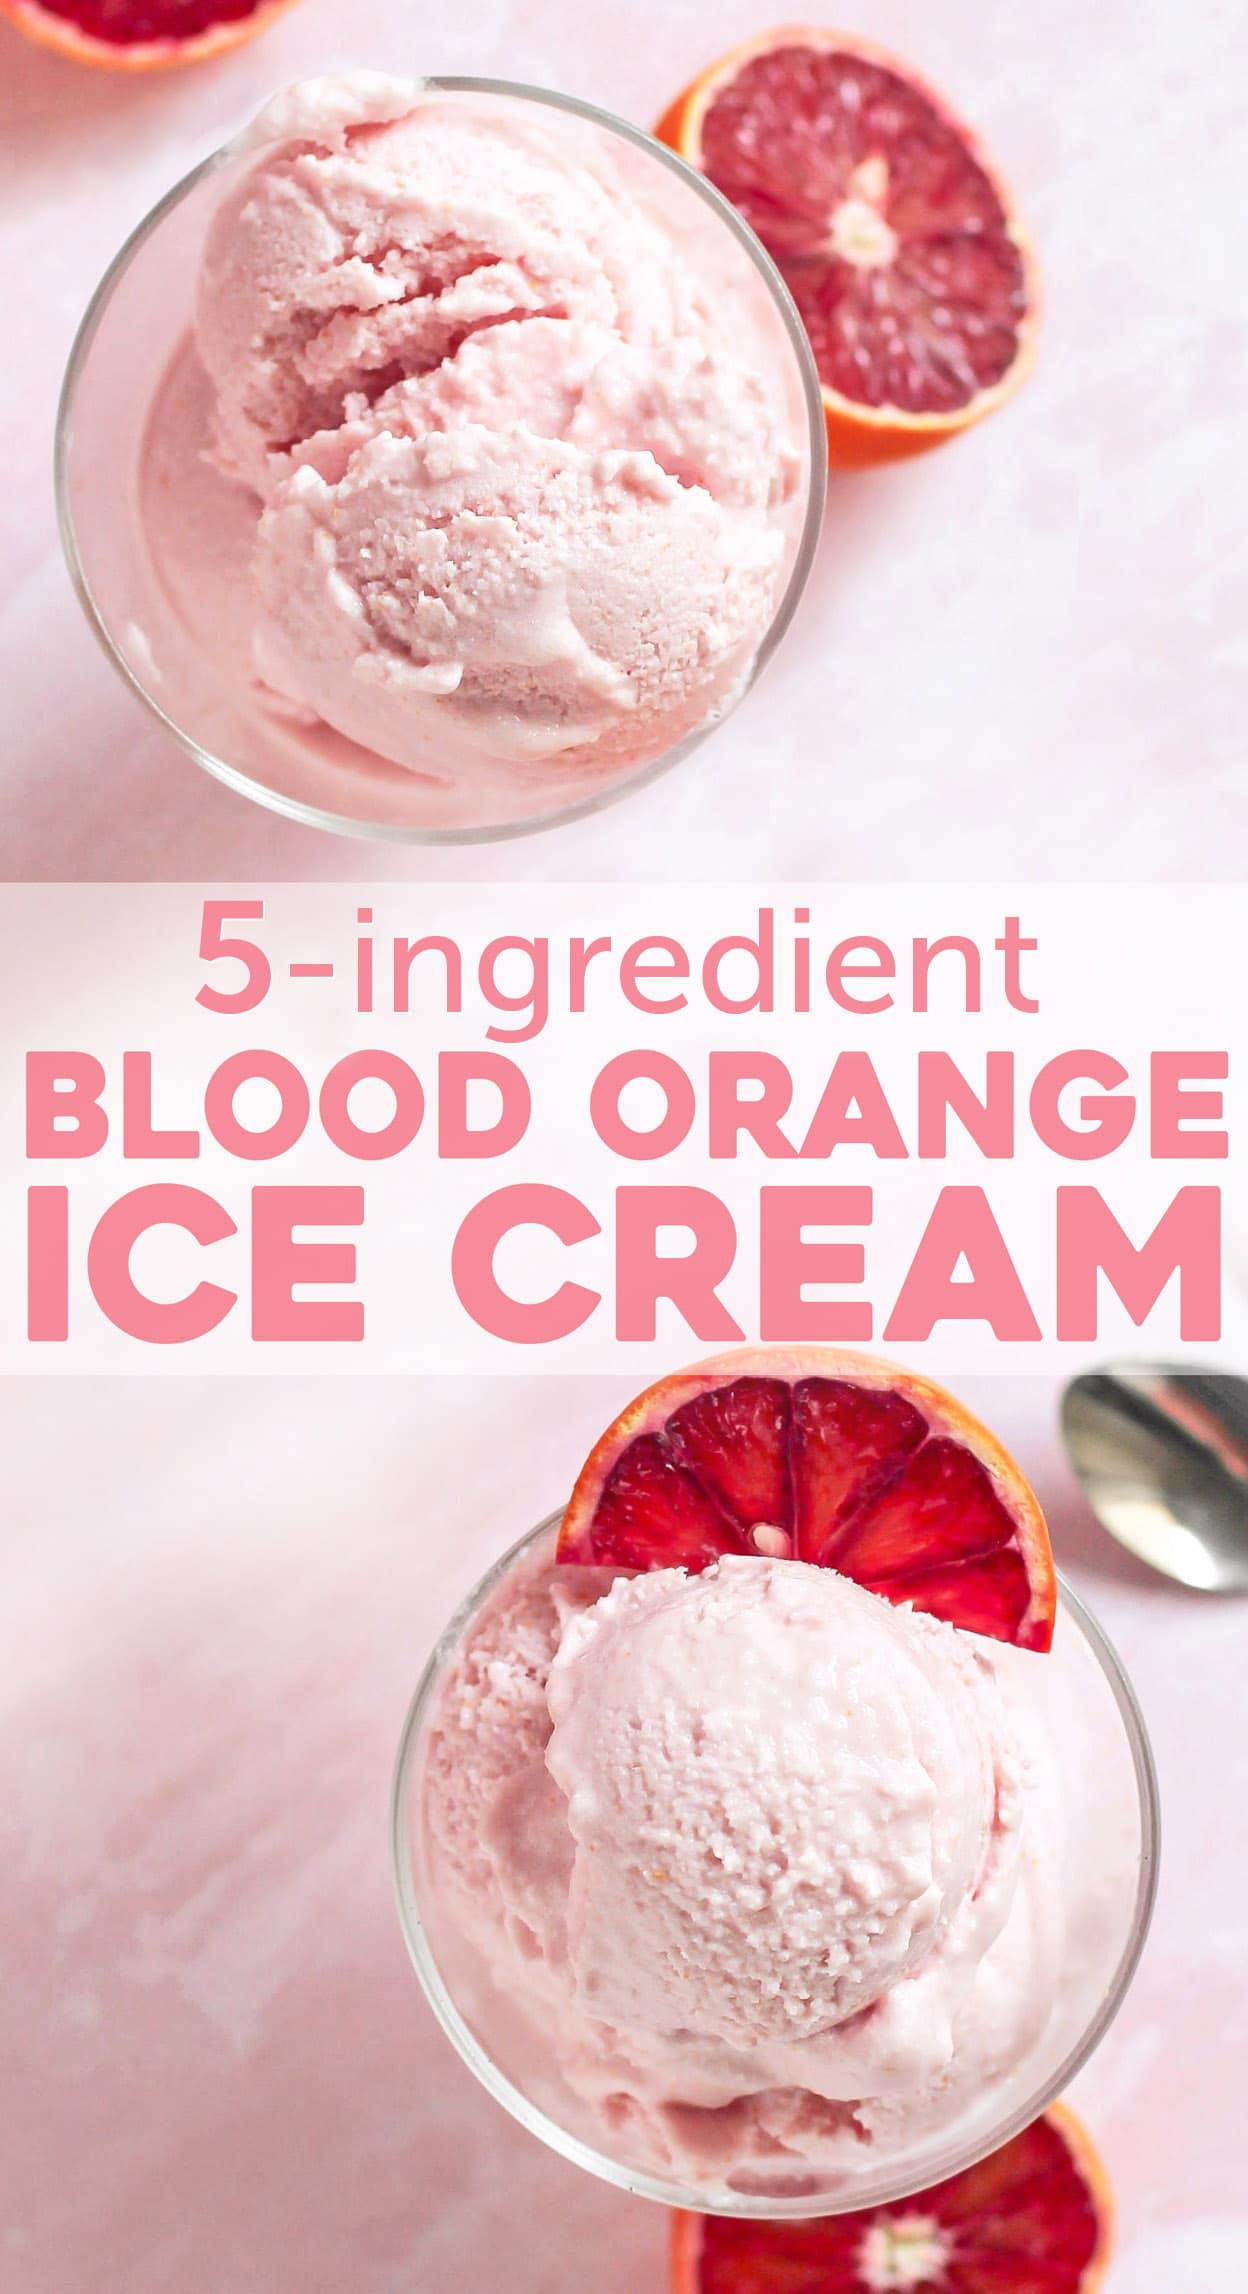 This 5-ingredient Blood Orange Ice Cream is sweet, tart, citrusy, and oh so satisfying. No need for the heavy cream, white sugar, artificial flavors, and artificial food dyes! This is the perfect ice cream to indulge in, guilt-free! Compared to store-bought ice cream, this is lower in calories, fat, and sugar, and higher in protein!